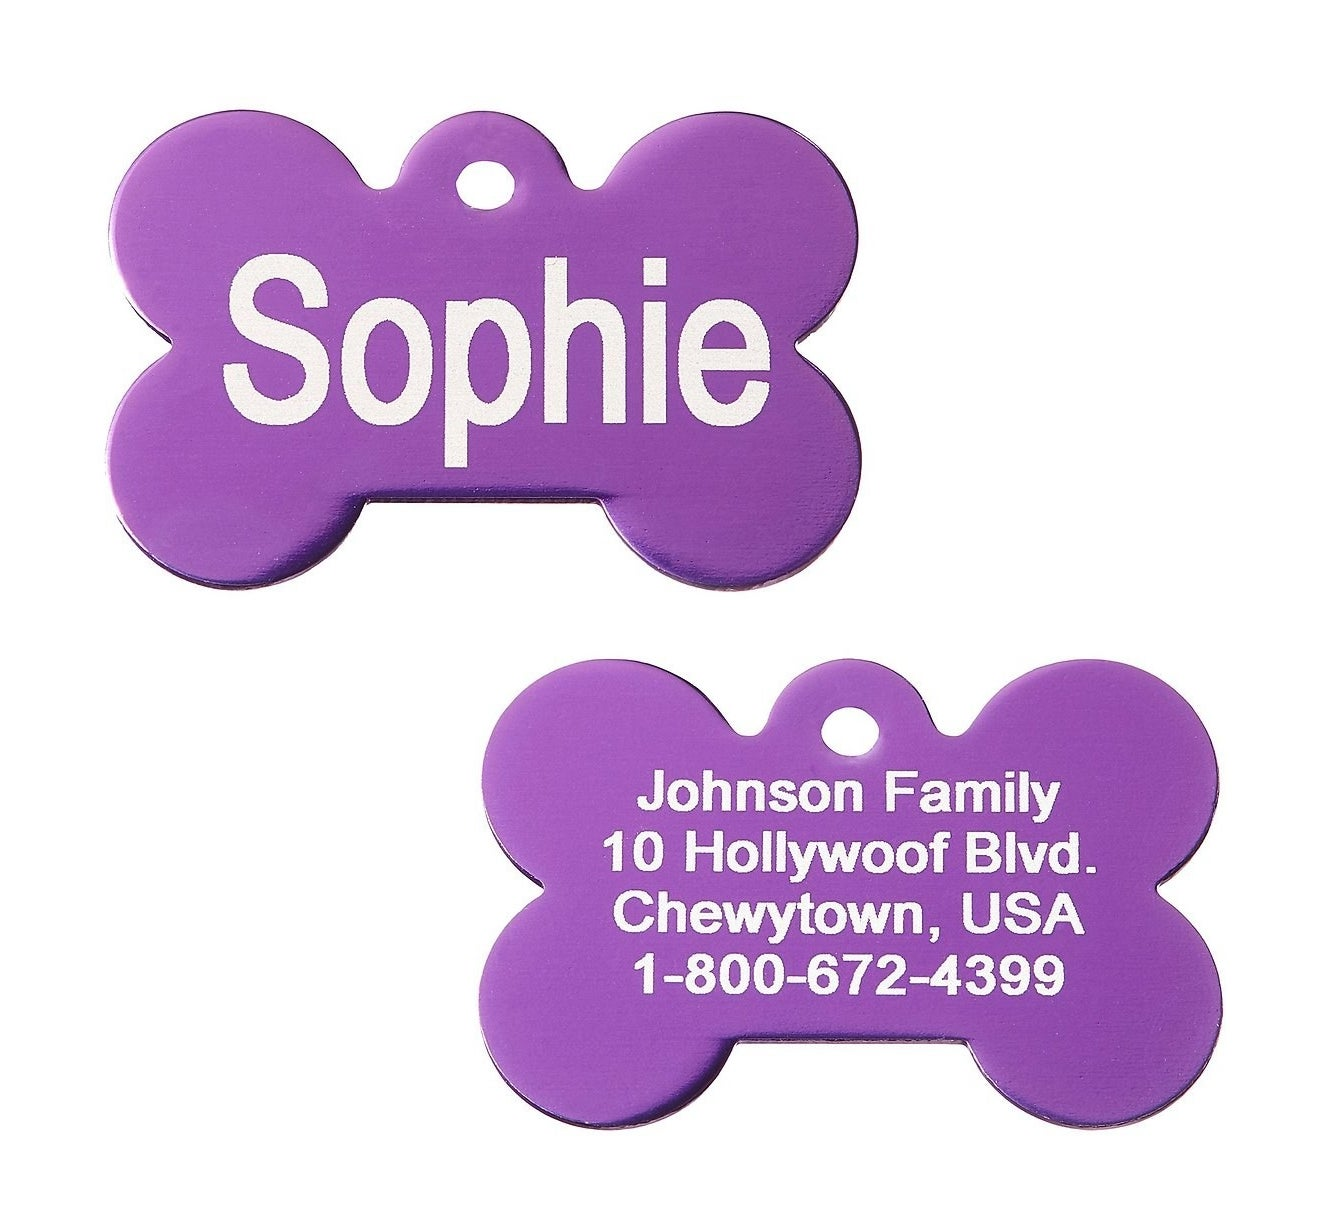 The front and back of the dog tag showing a name, family name, address, and phone number